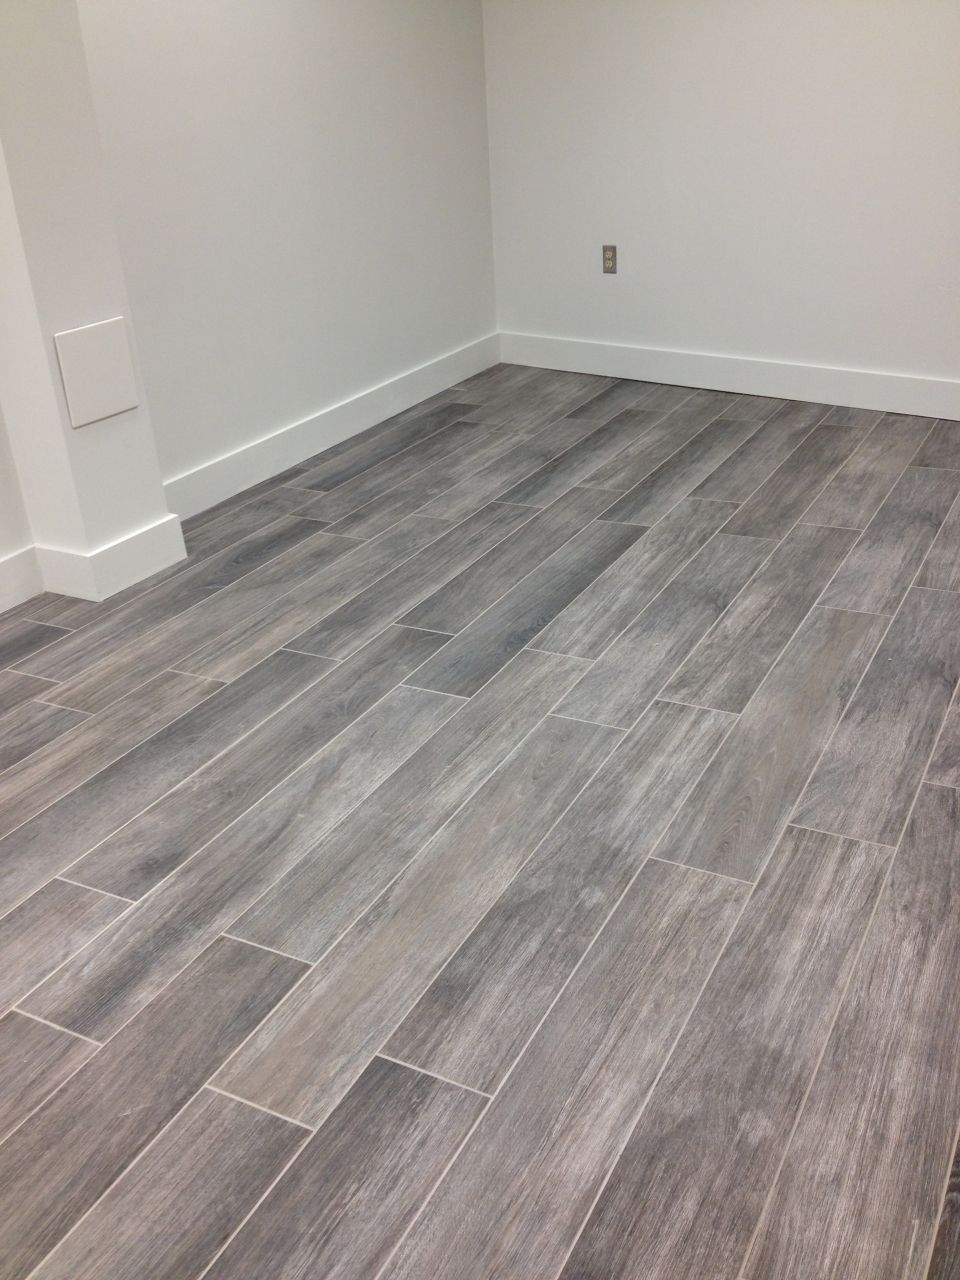 Gray Wood Tile Floor Nice Option For Bath Or Kitchen No3lcd6n8